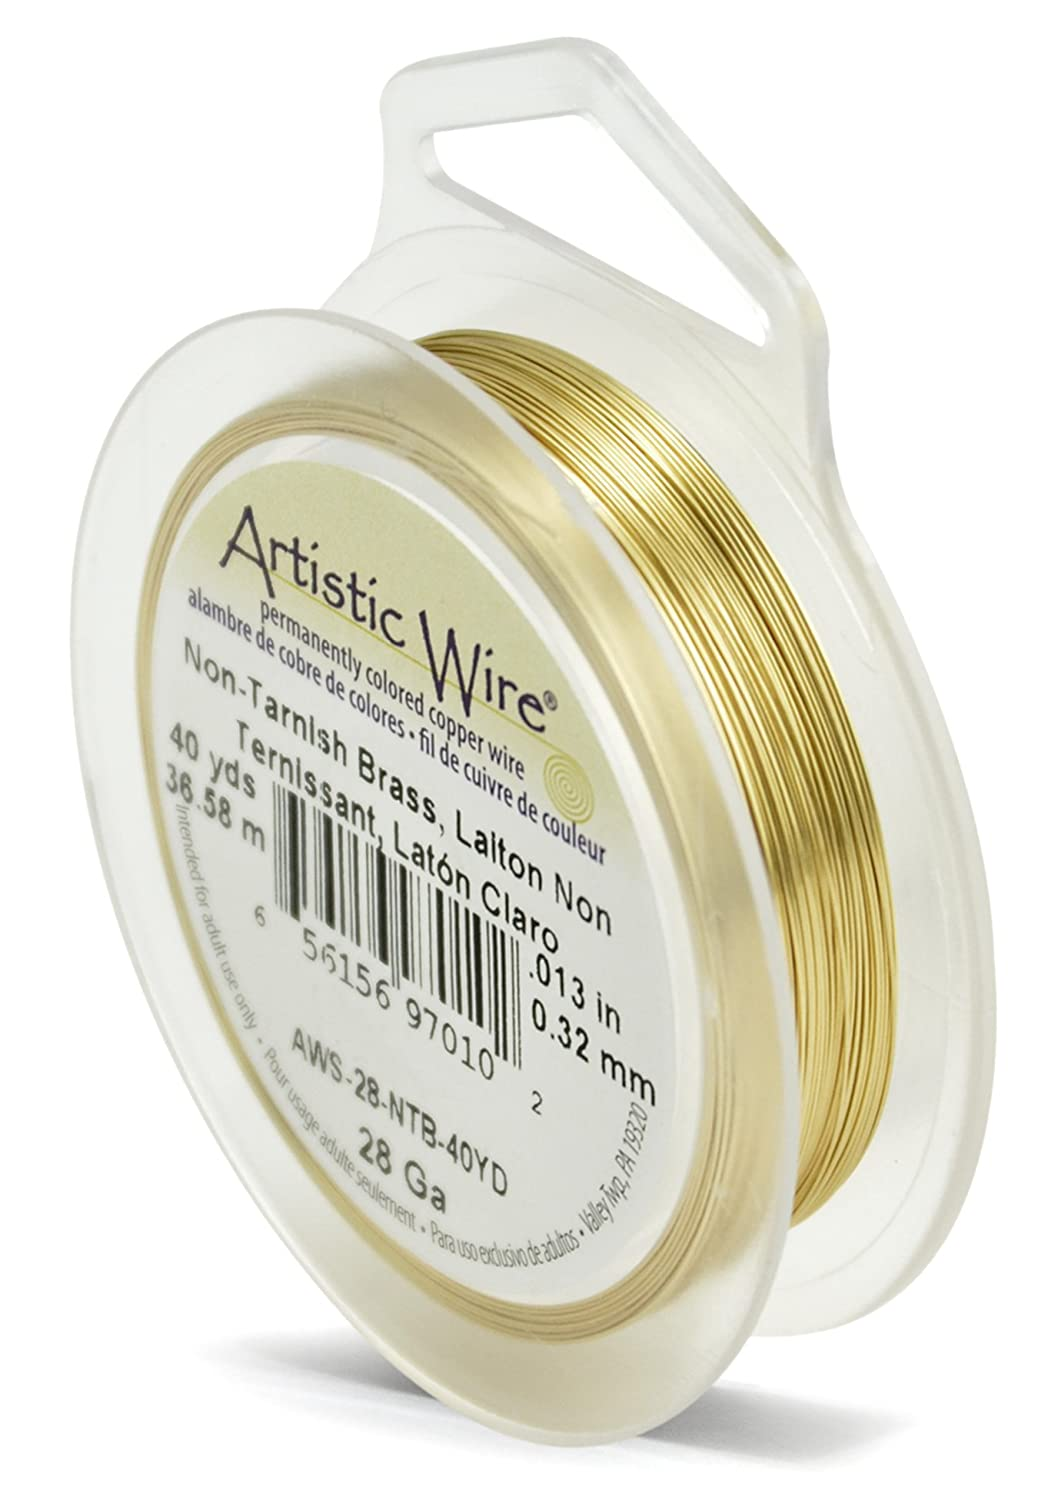 Amazon artistic wire 28 gauge non tarnish brass wire 40 yards greentooth Images